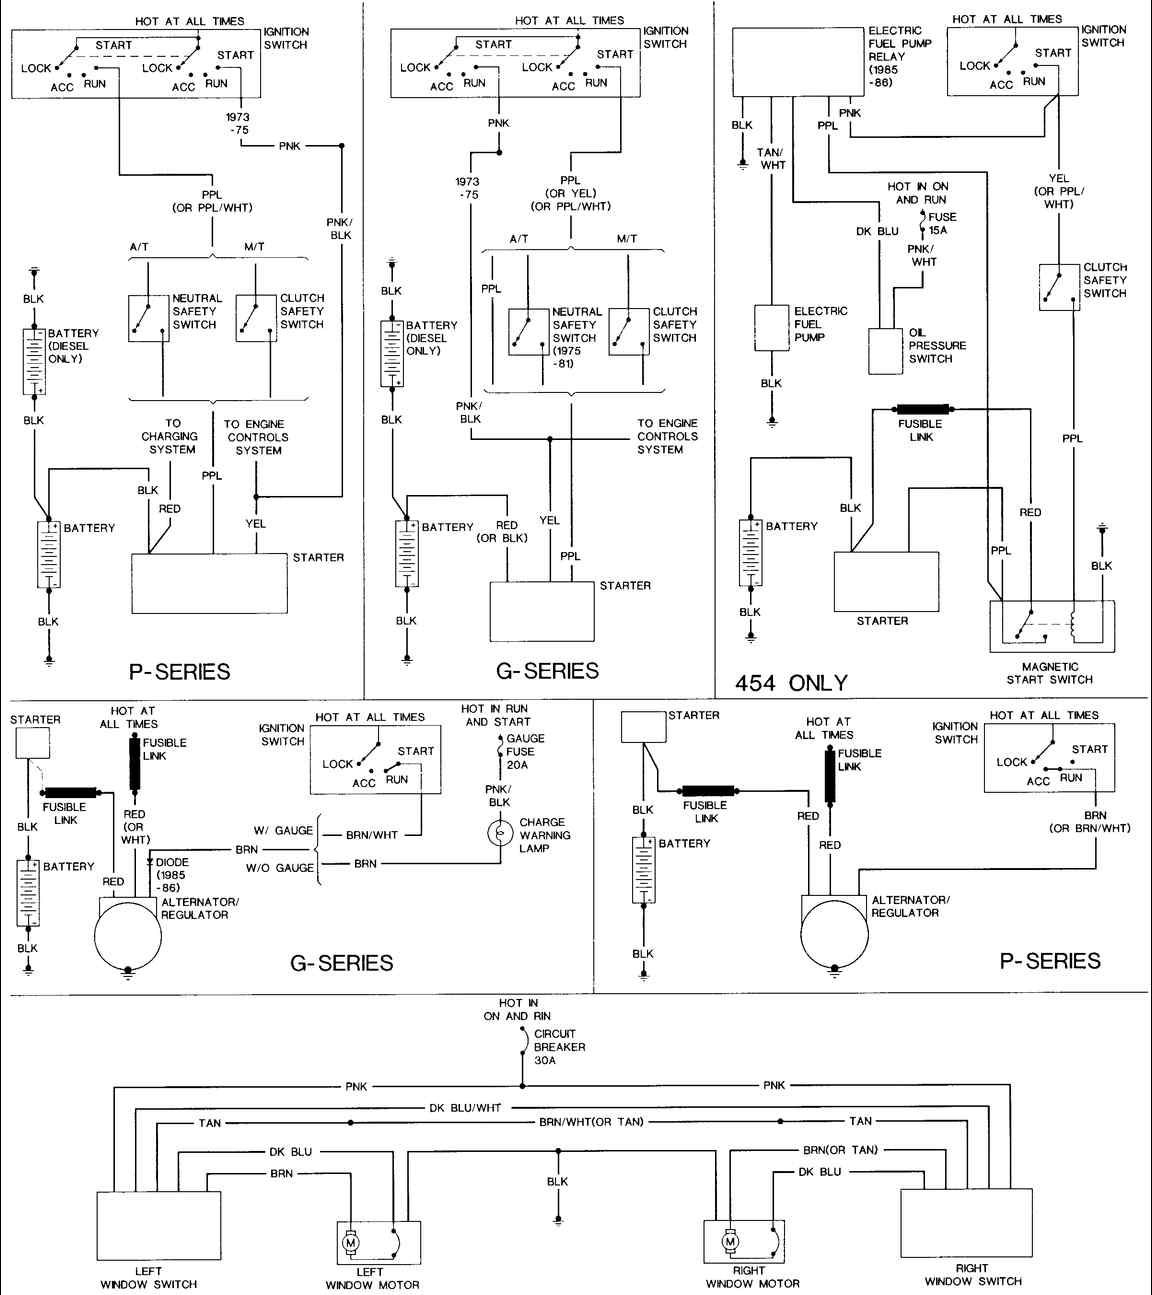 0c73623a181dc376dbb4777e2029d285 85 chevy truck wiring diagram 85 chevy van the steering column 1937 Chevy Wiring Diagram at reclaimingppi.co